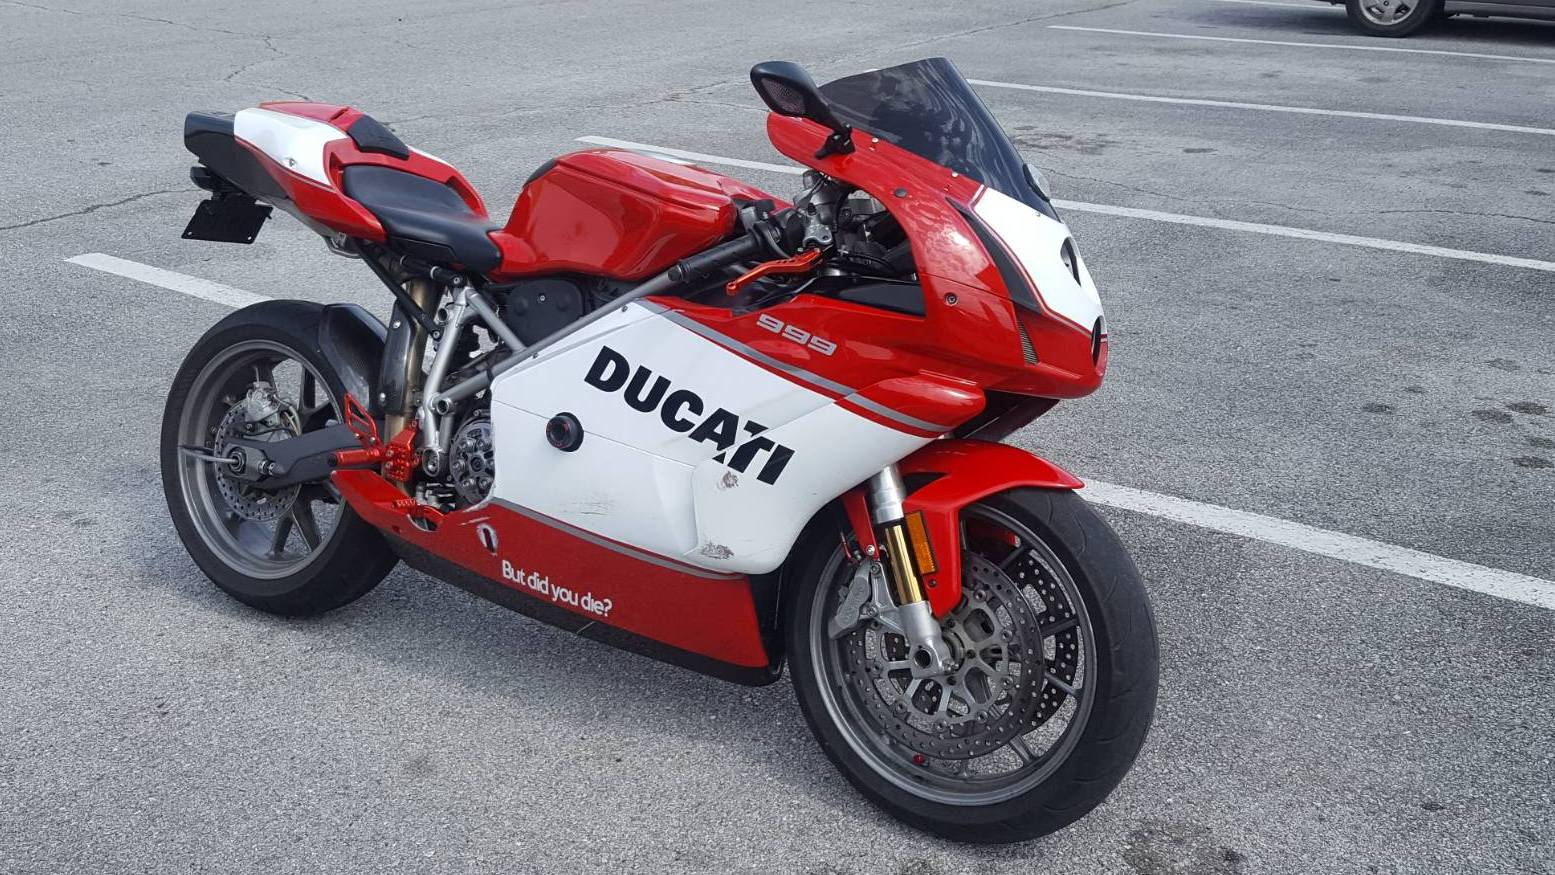 Magnificent Ducati 999 For Rent Near Lowell Ar Machost Co Dining Chair Design Ideas Machostcouk